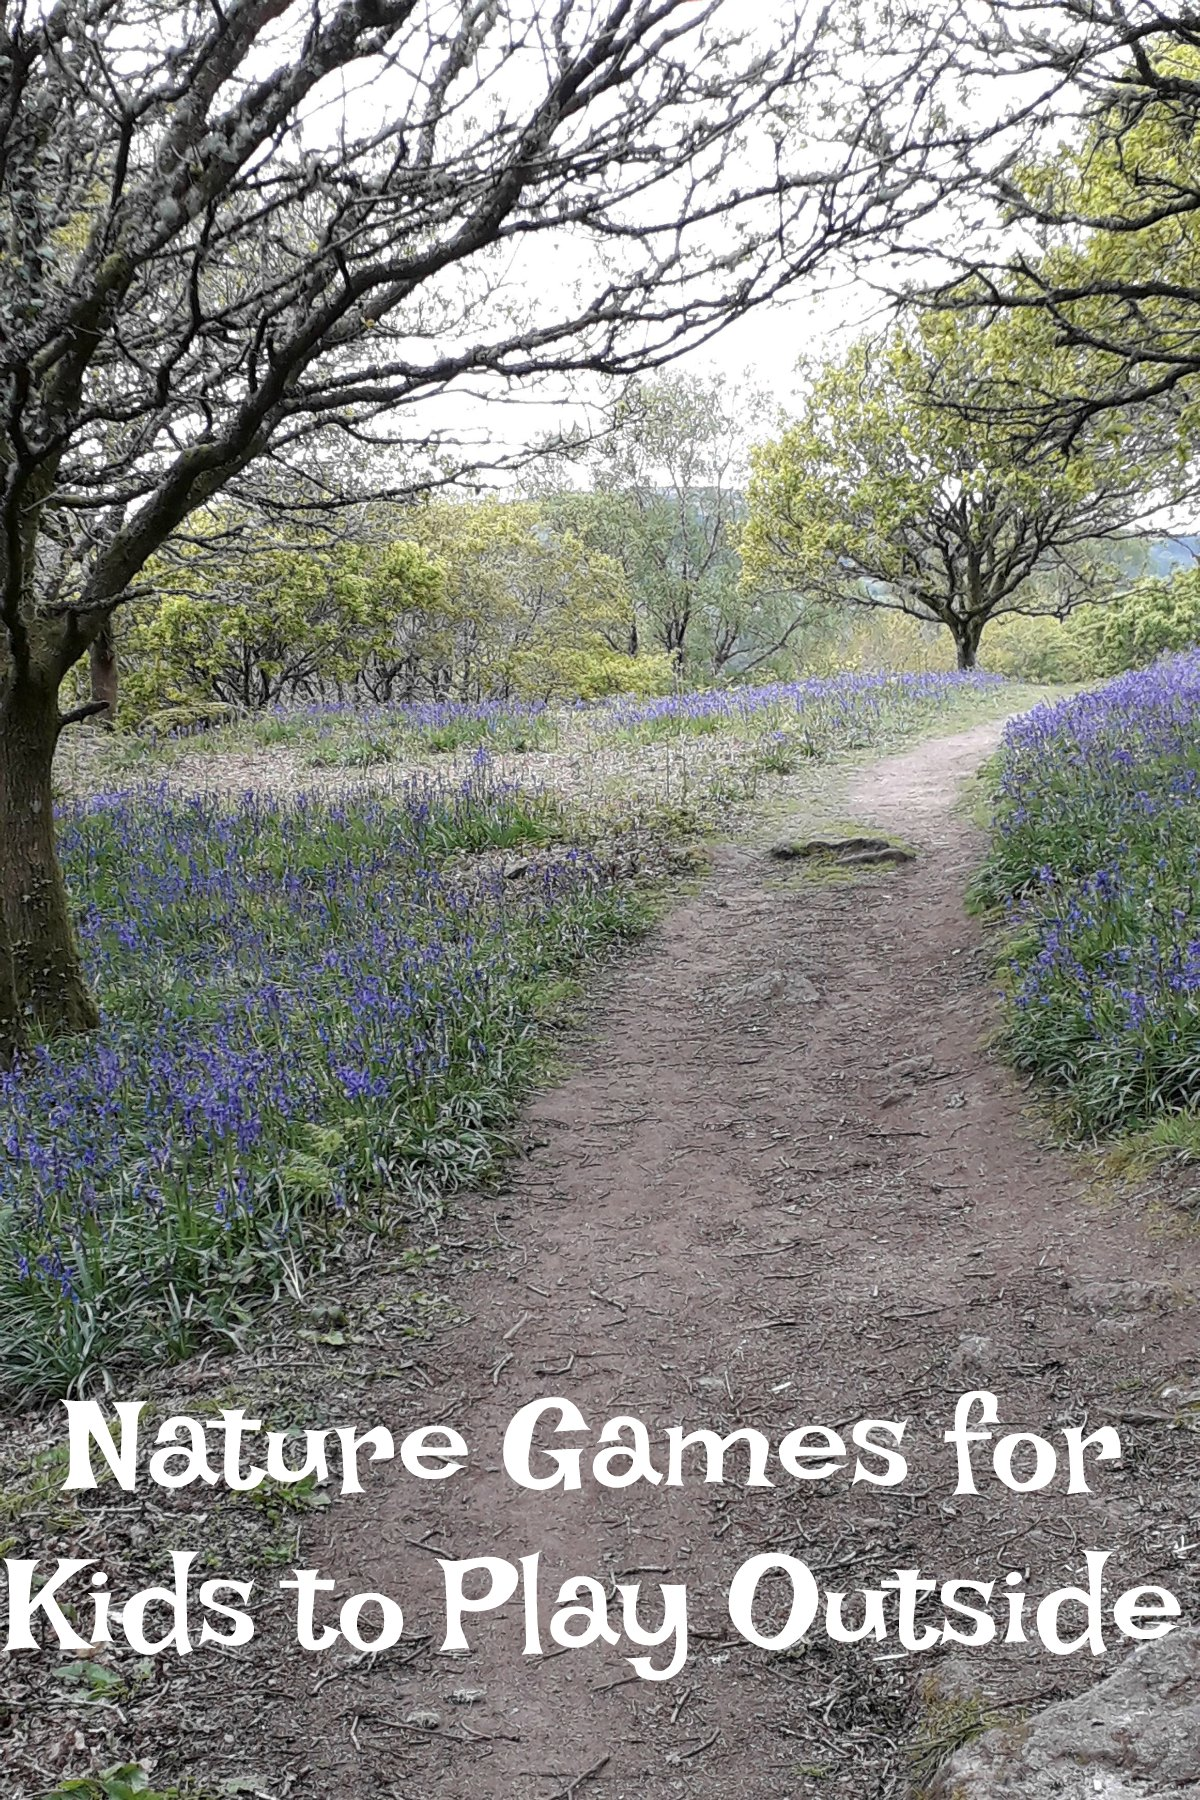 Nature Games for Kids to Play Outside